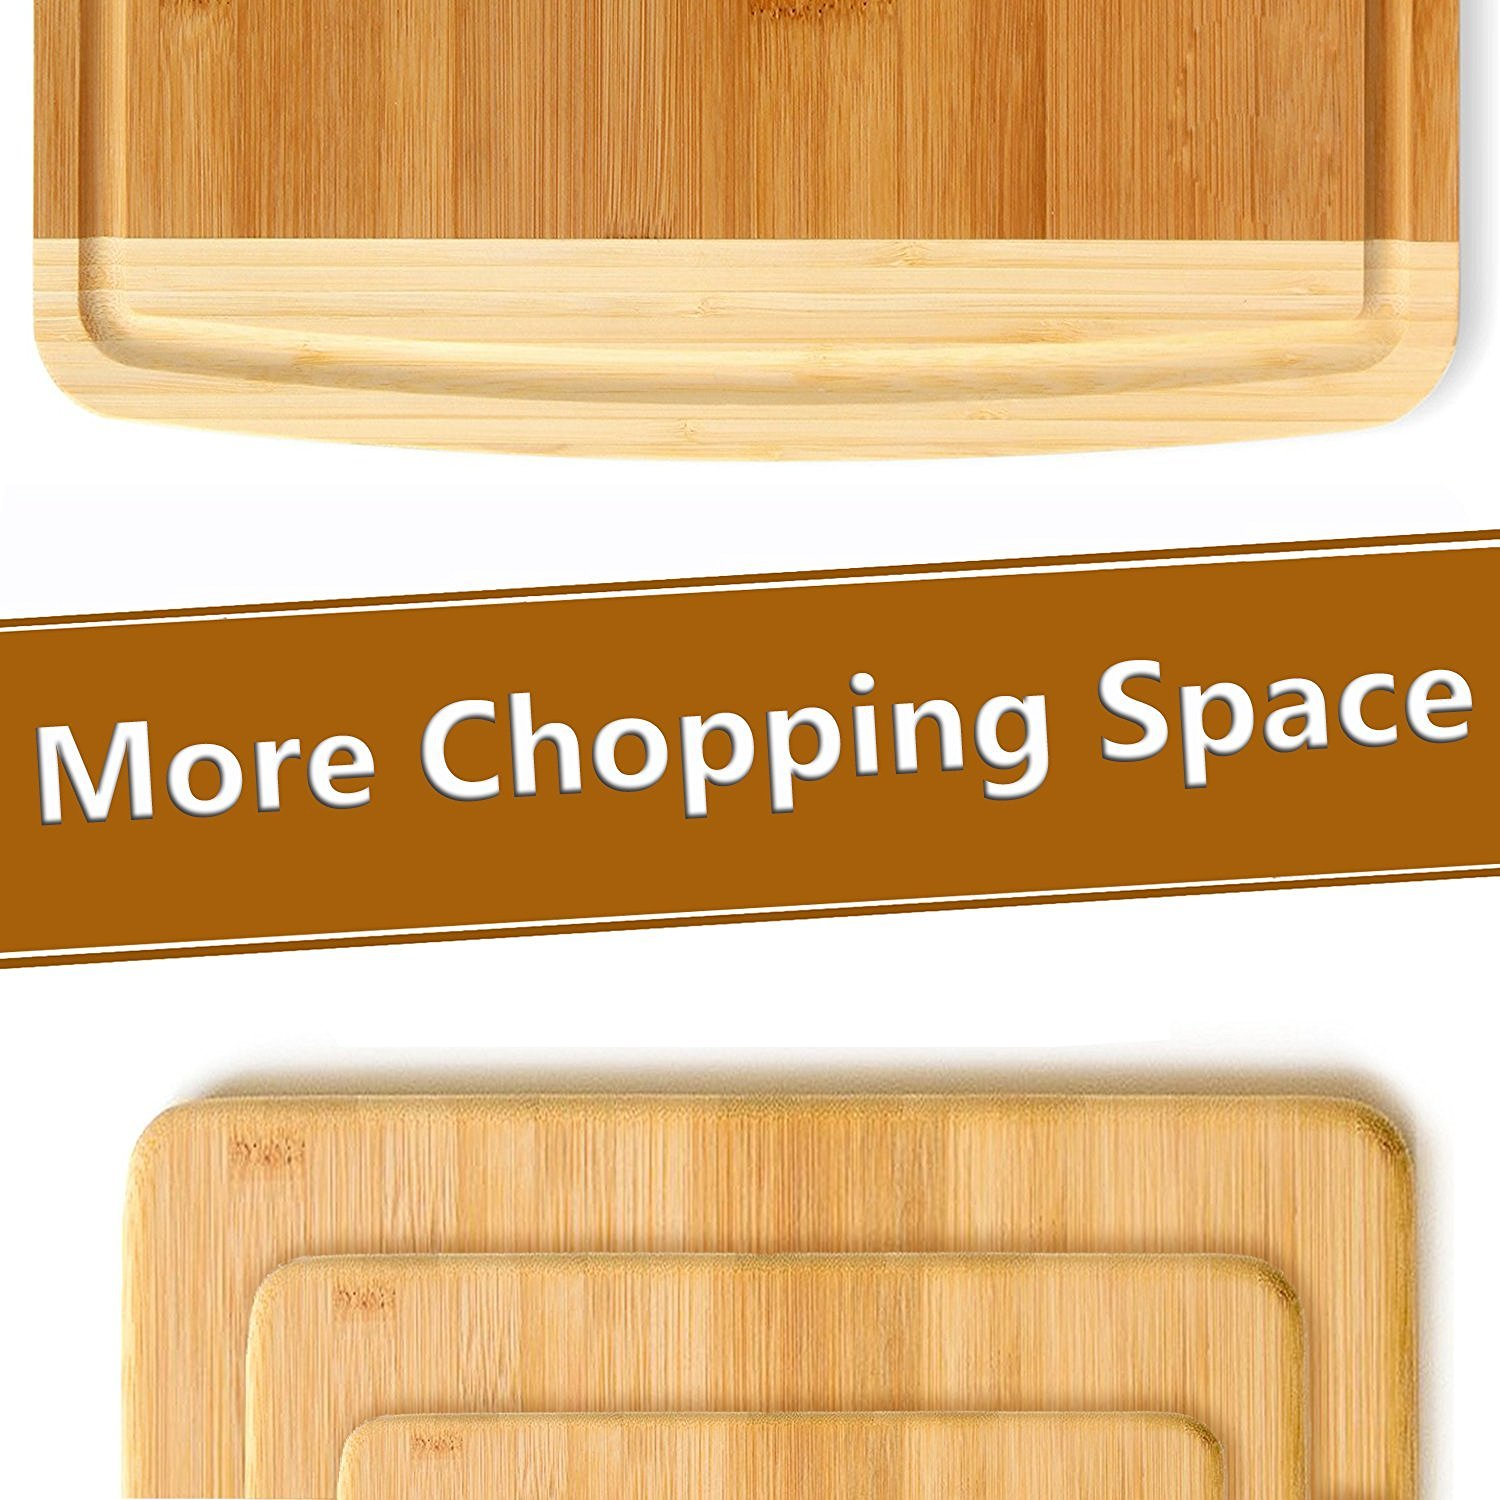 Premium Bamboo Cutting Board Set of 4 - Eco-Friendly Wood Chopping Boards with Juice Groove for Food Prep, Meat, Vegetables, Fruits, Crackers & Cheese - 100% Natural Bamboo Craftsmanship. by: Bambusi by Bambüsi (Image #6)